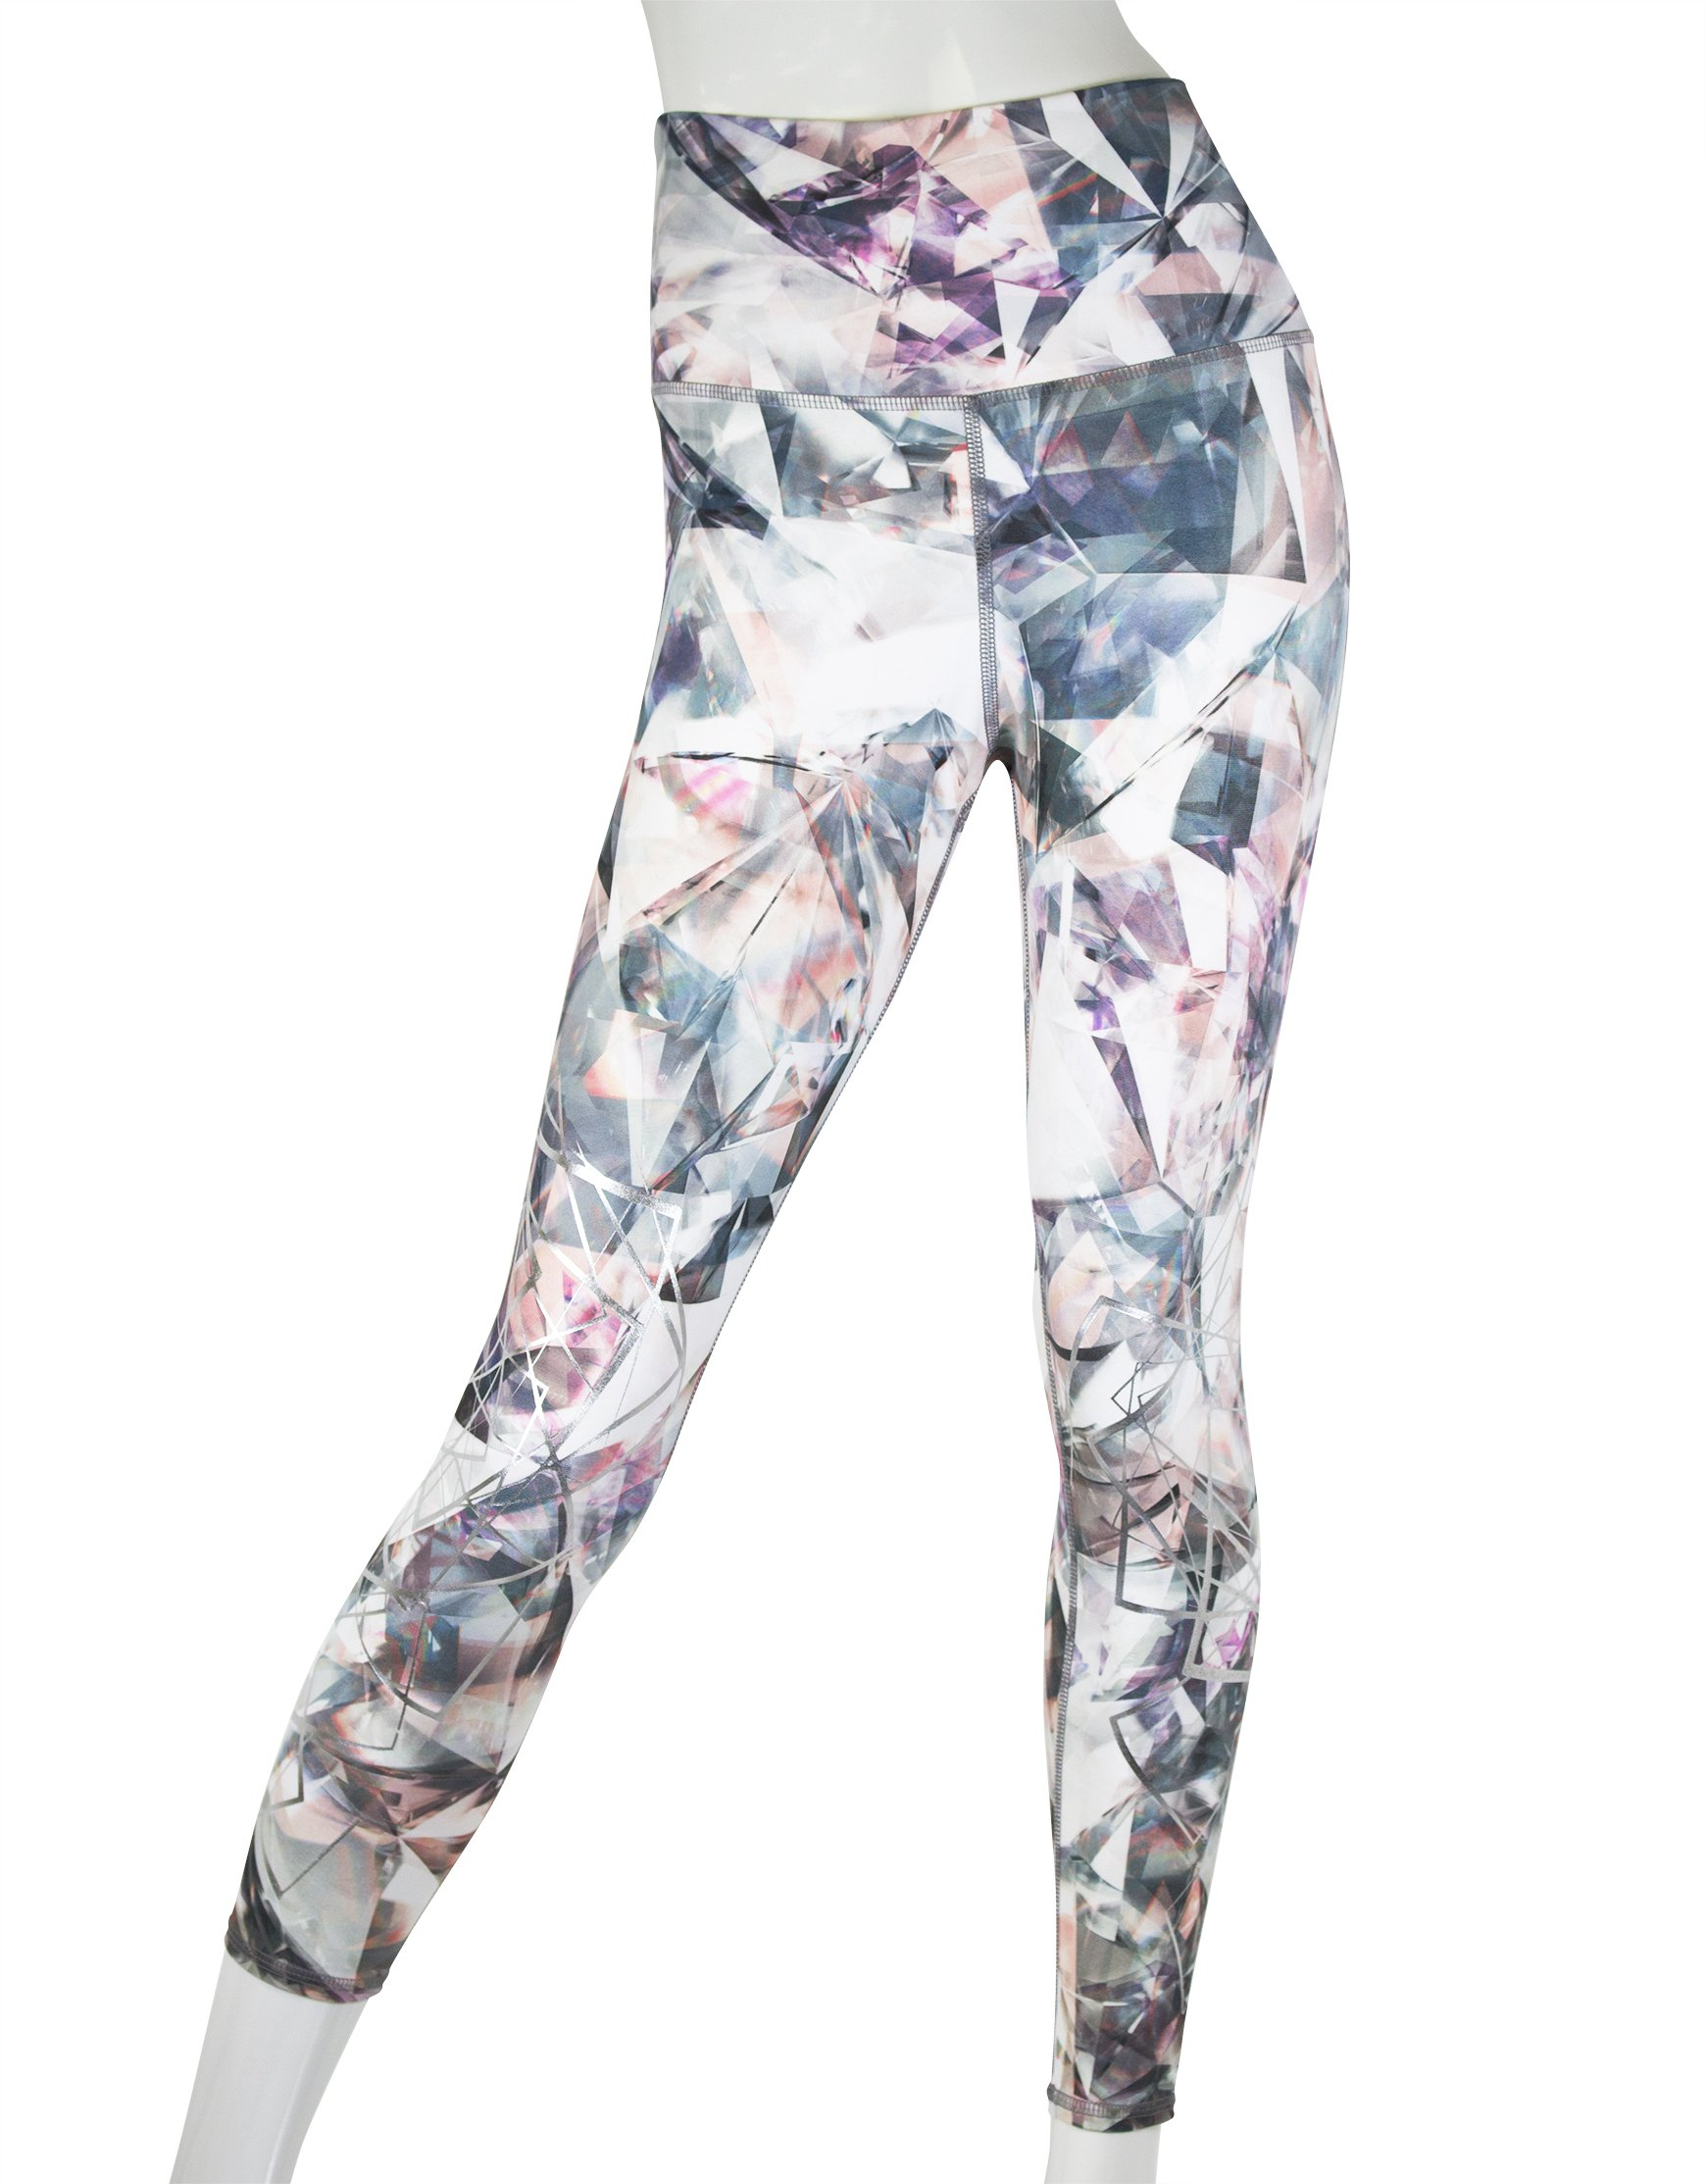 EVCR Womens Chard Glass High-Waisted Legging